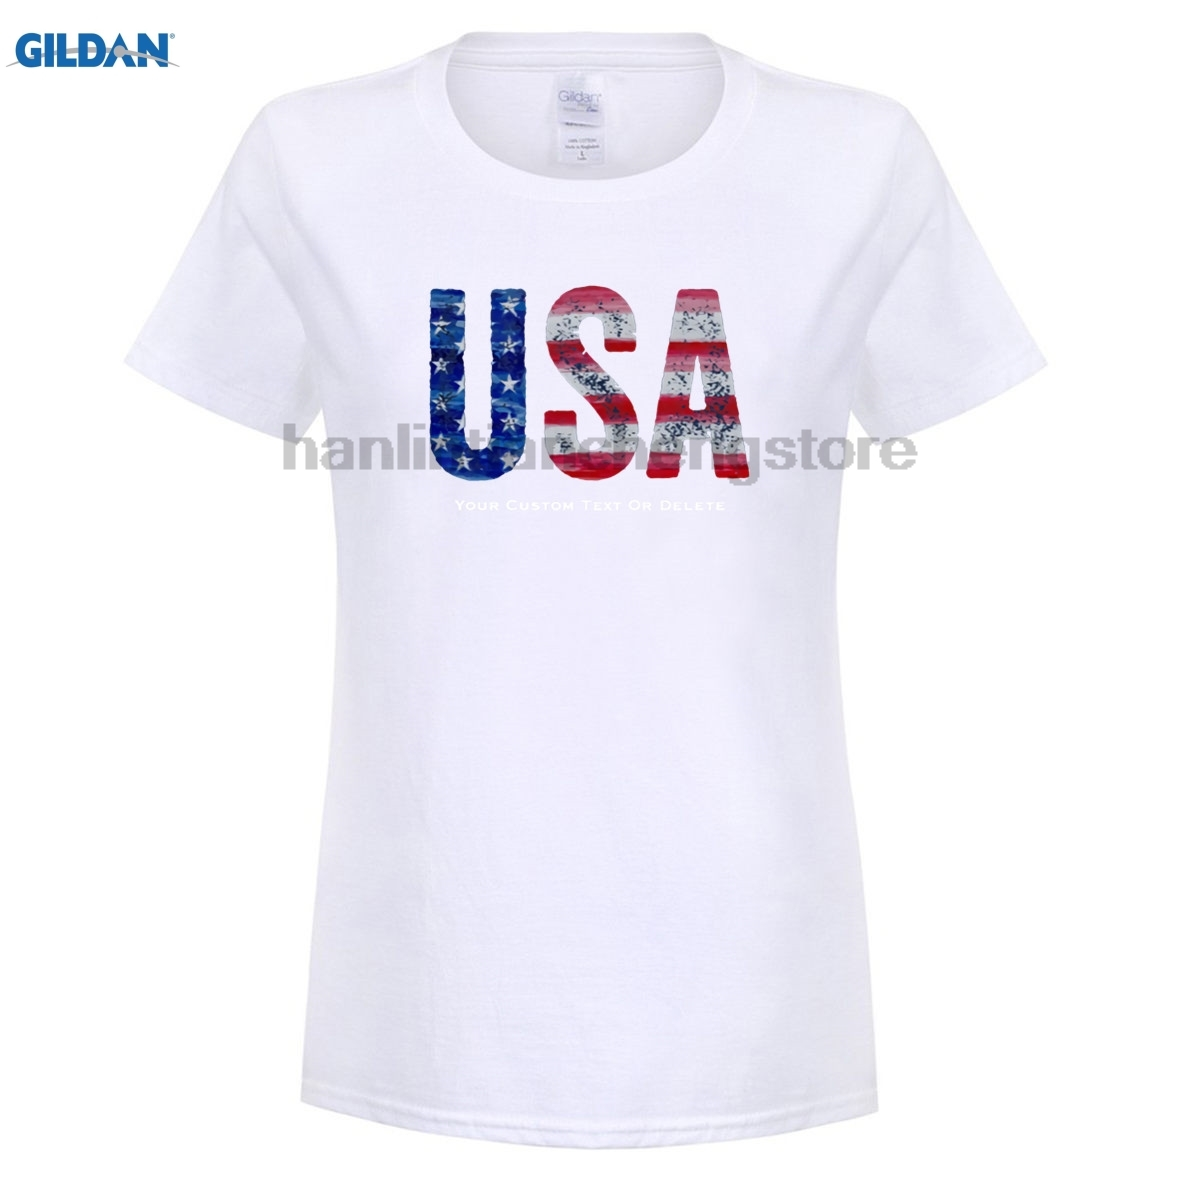 GILDAN Cool Vintage USA American Flag Custom Text T Shirt for women ...